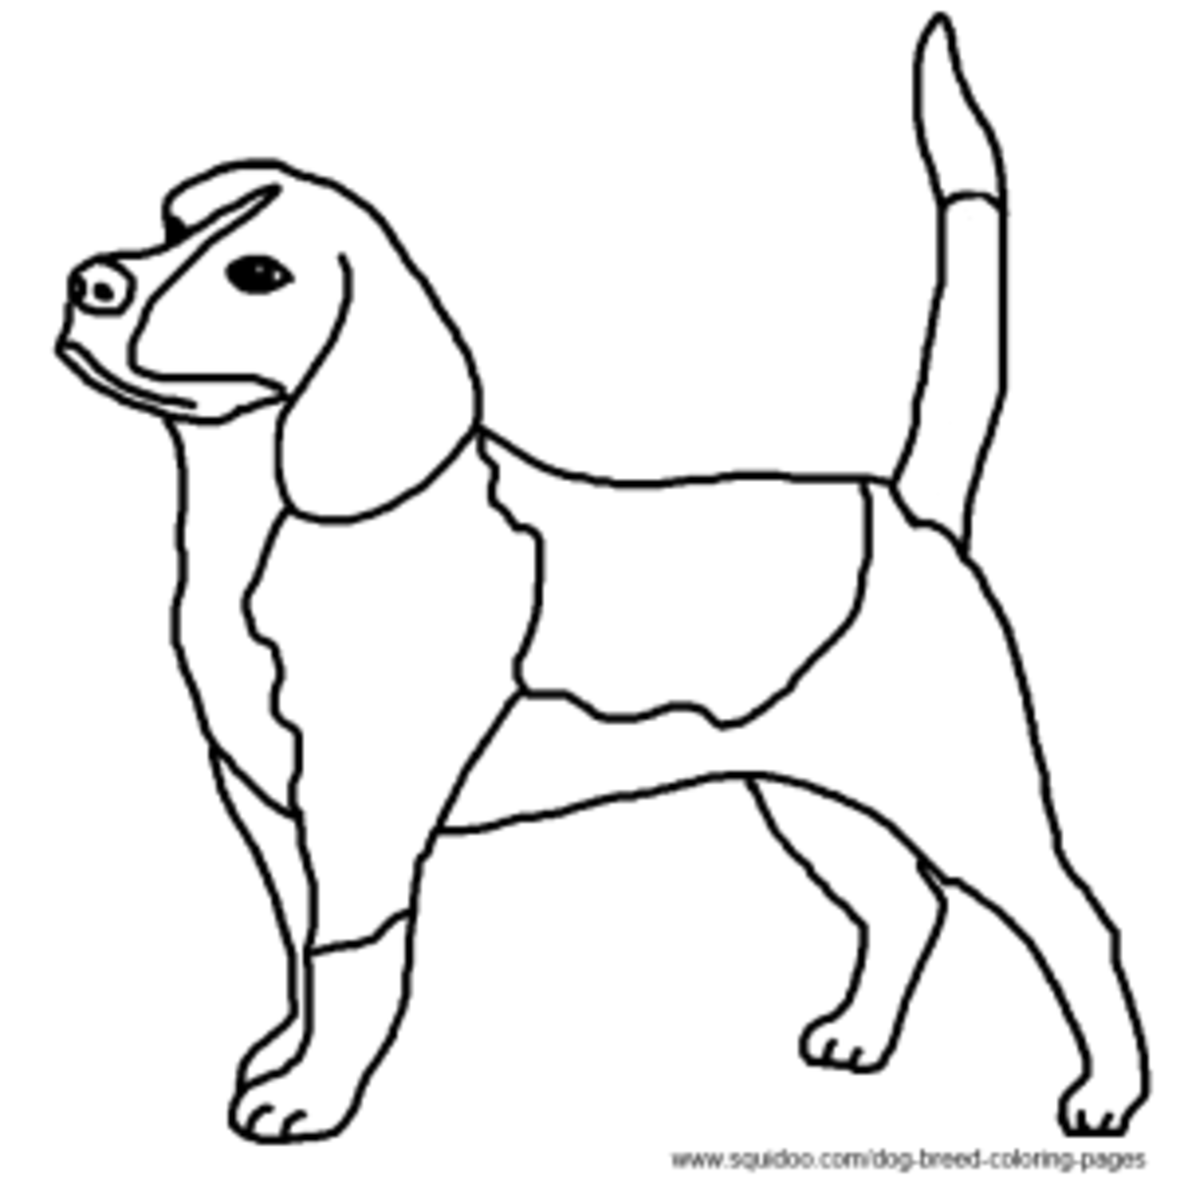 Beagle Puppy Coloring Sheets Coloring Pages Beagle Coloring Pages